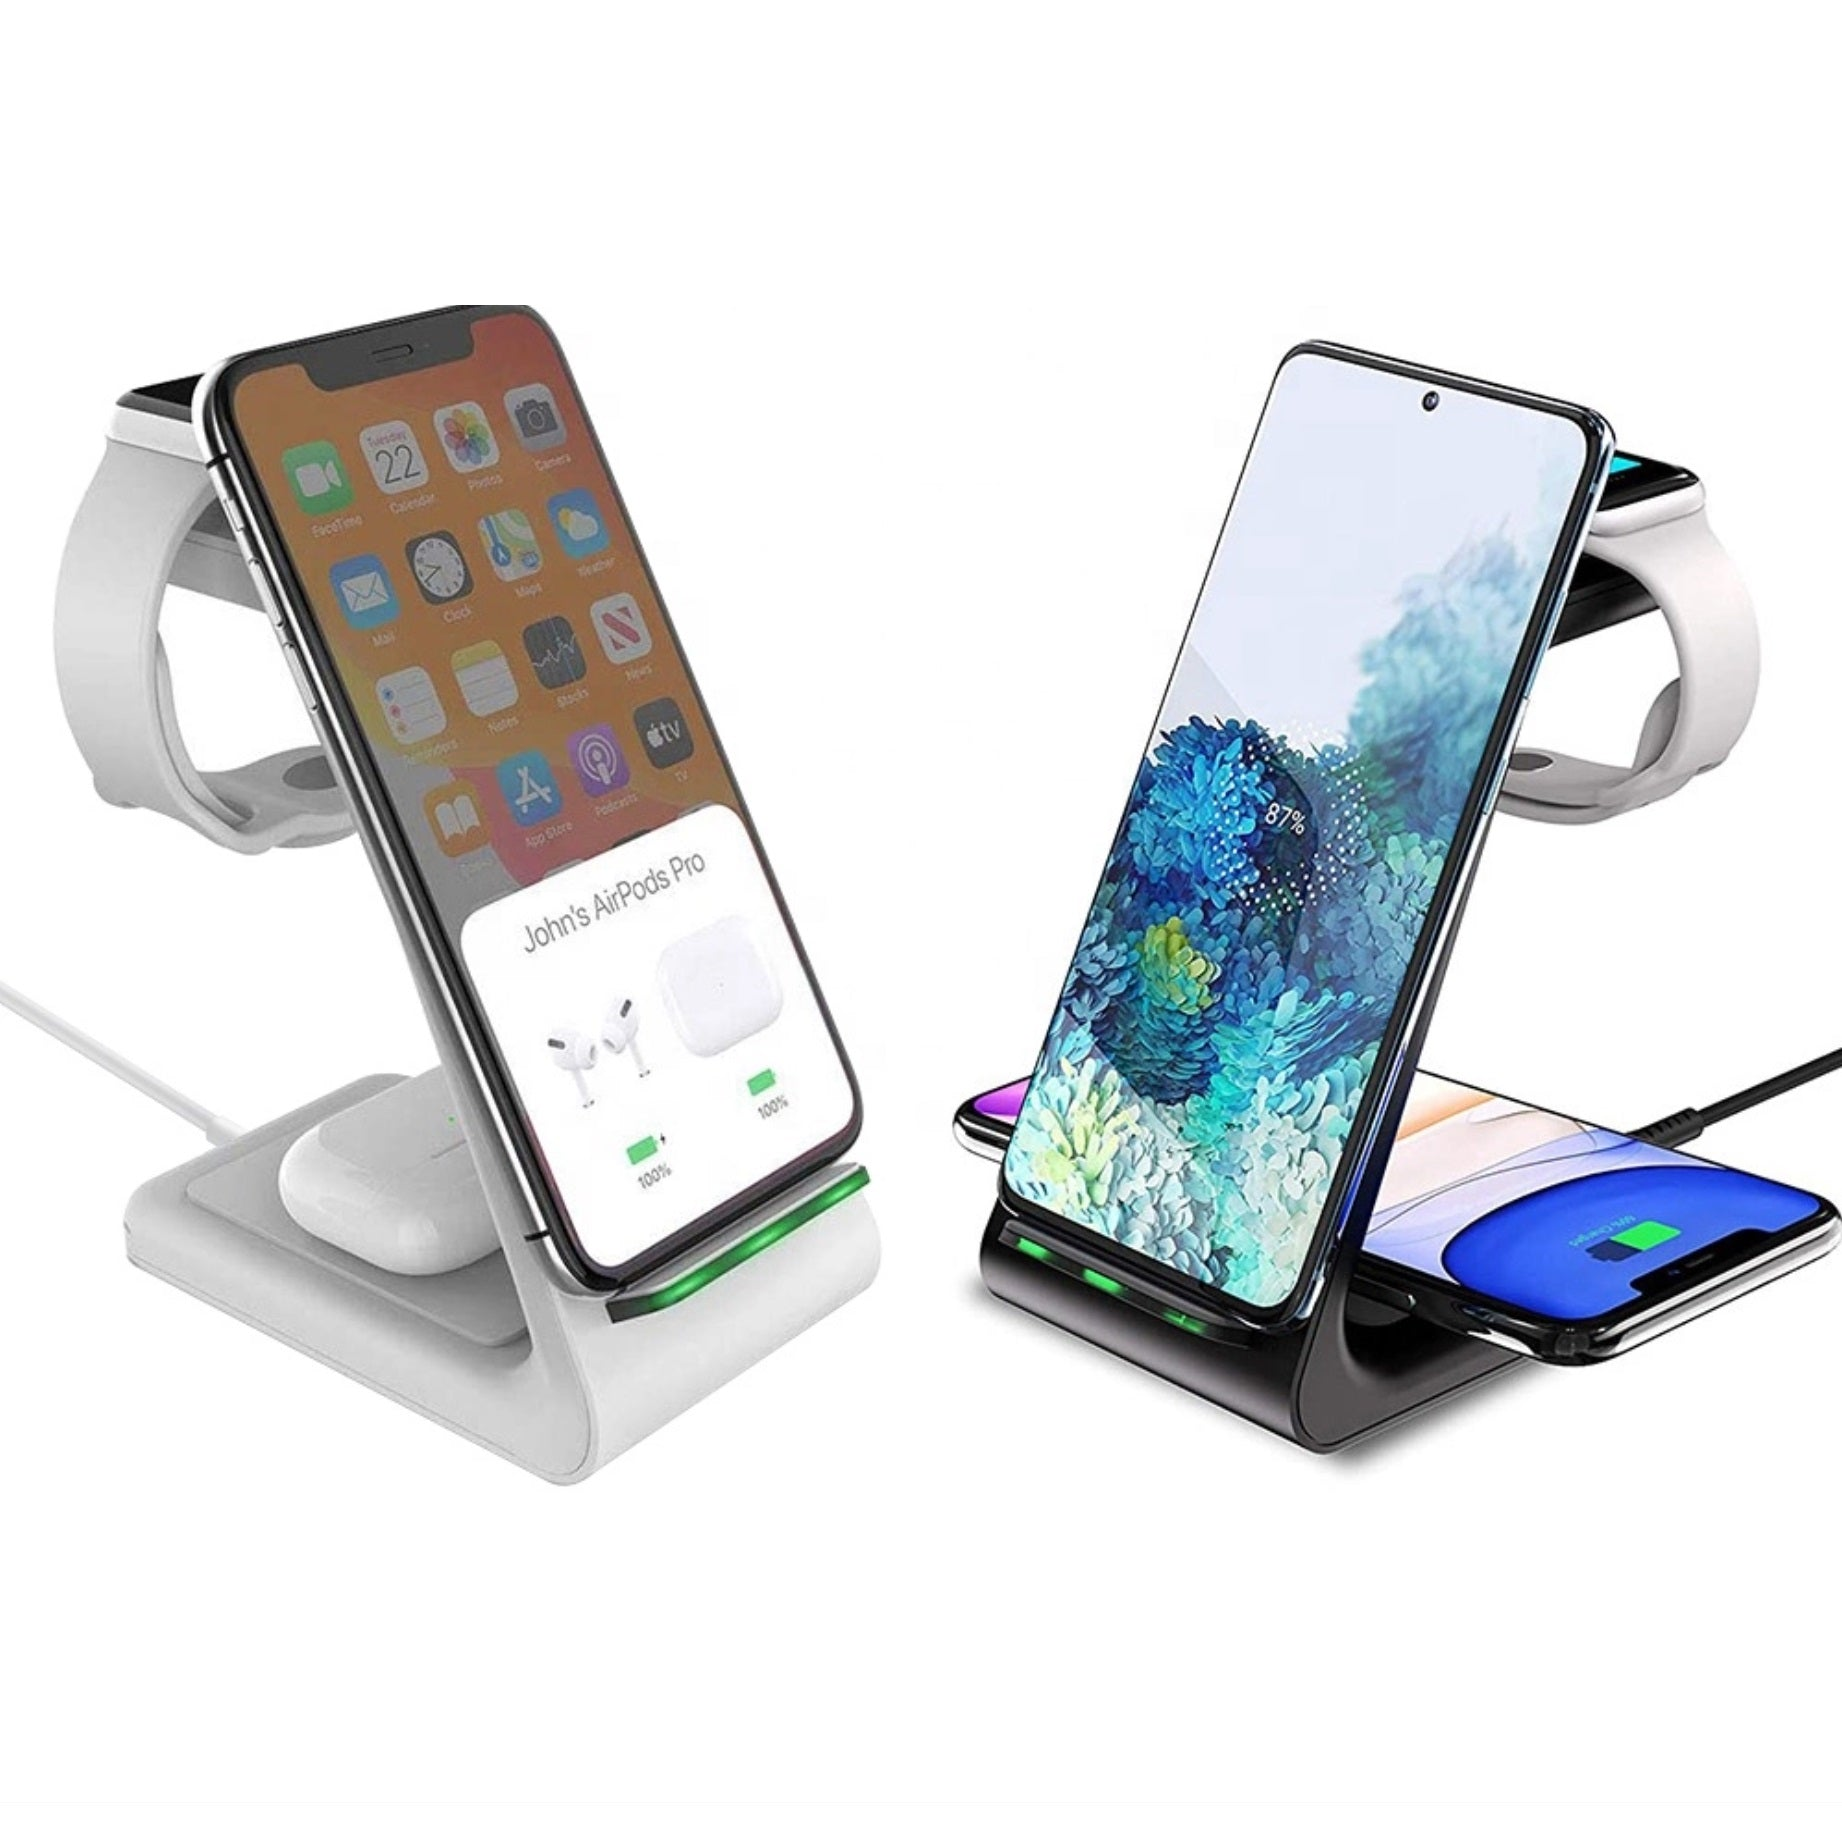 DockSmart Pro 3-In-1 Wireless Charging Station - For Apple and Samsung